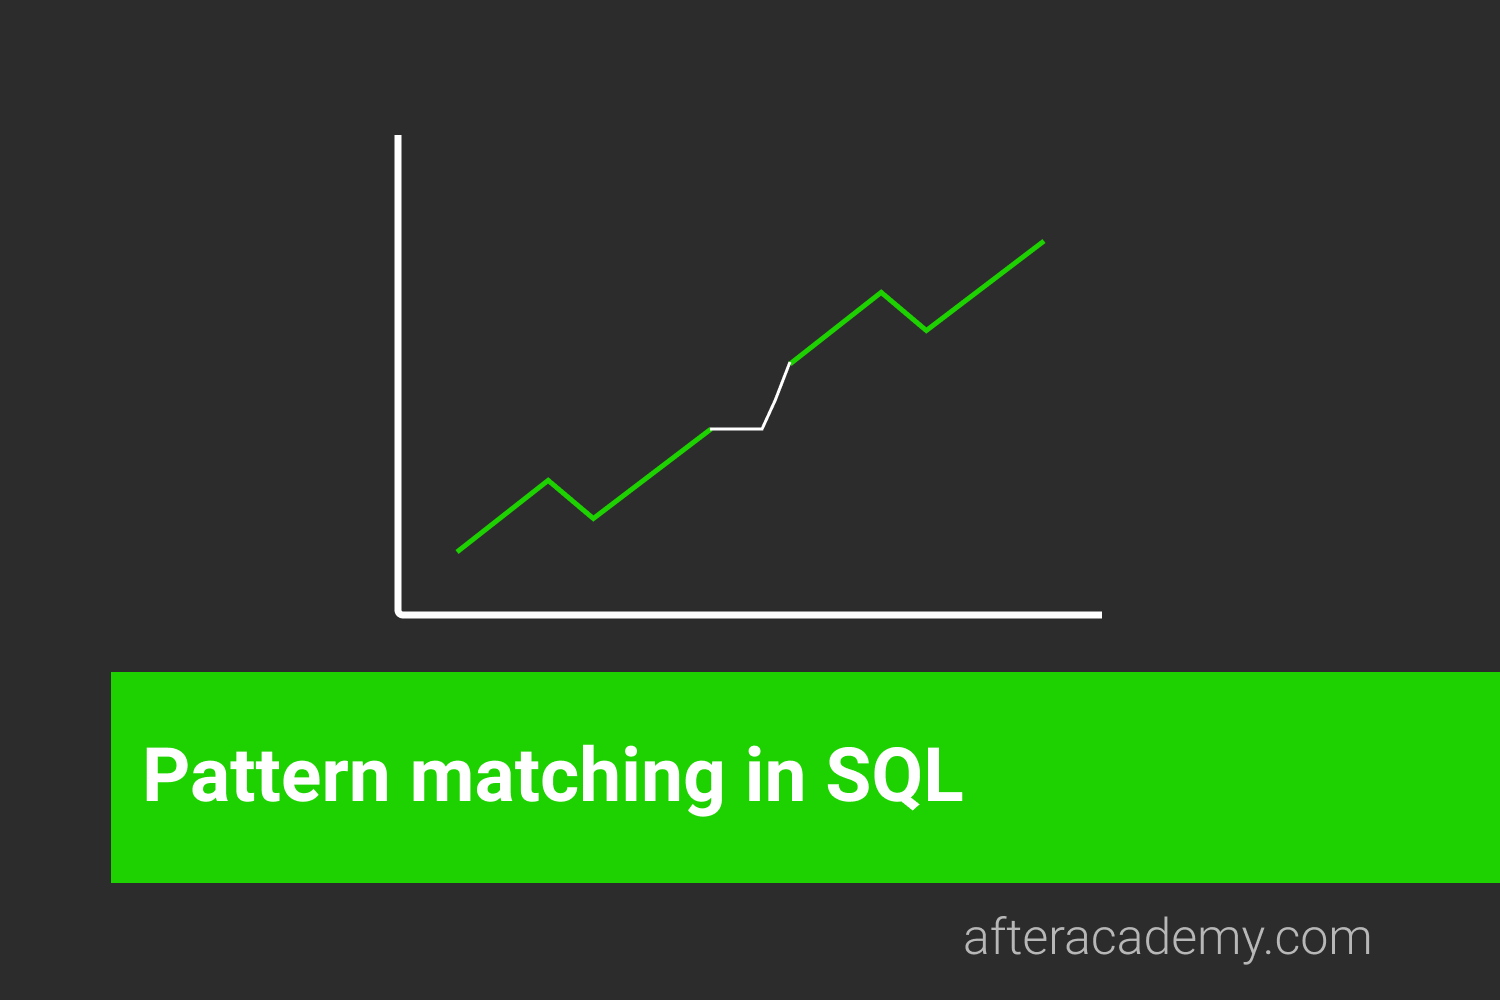 What is Pattern matching in SQL and how it is done?